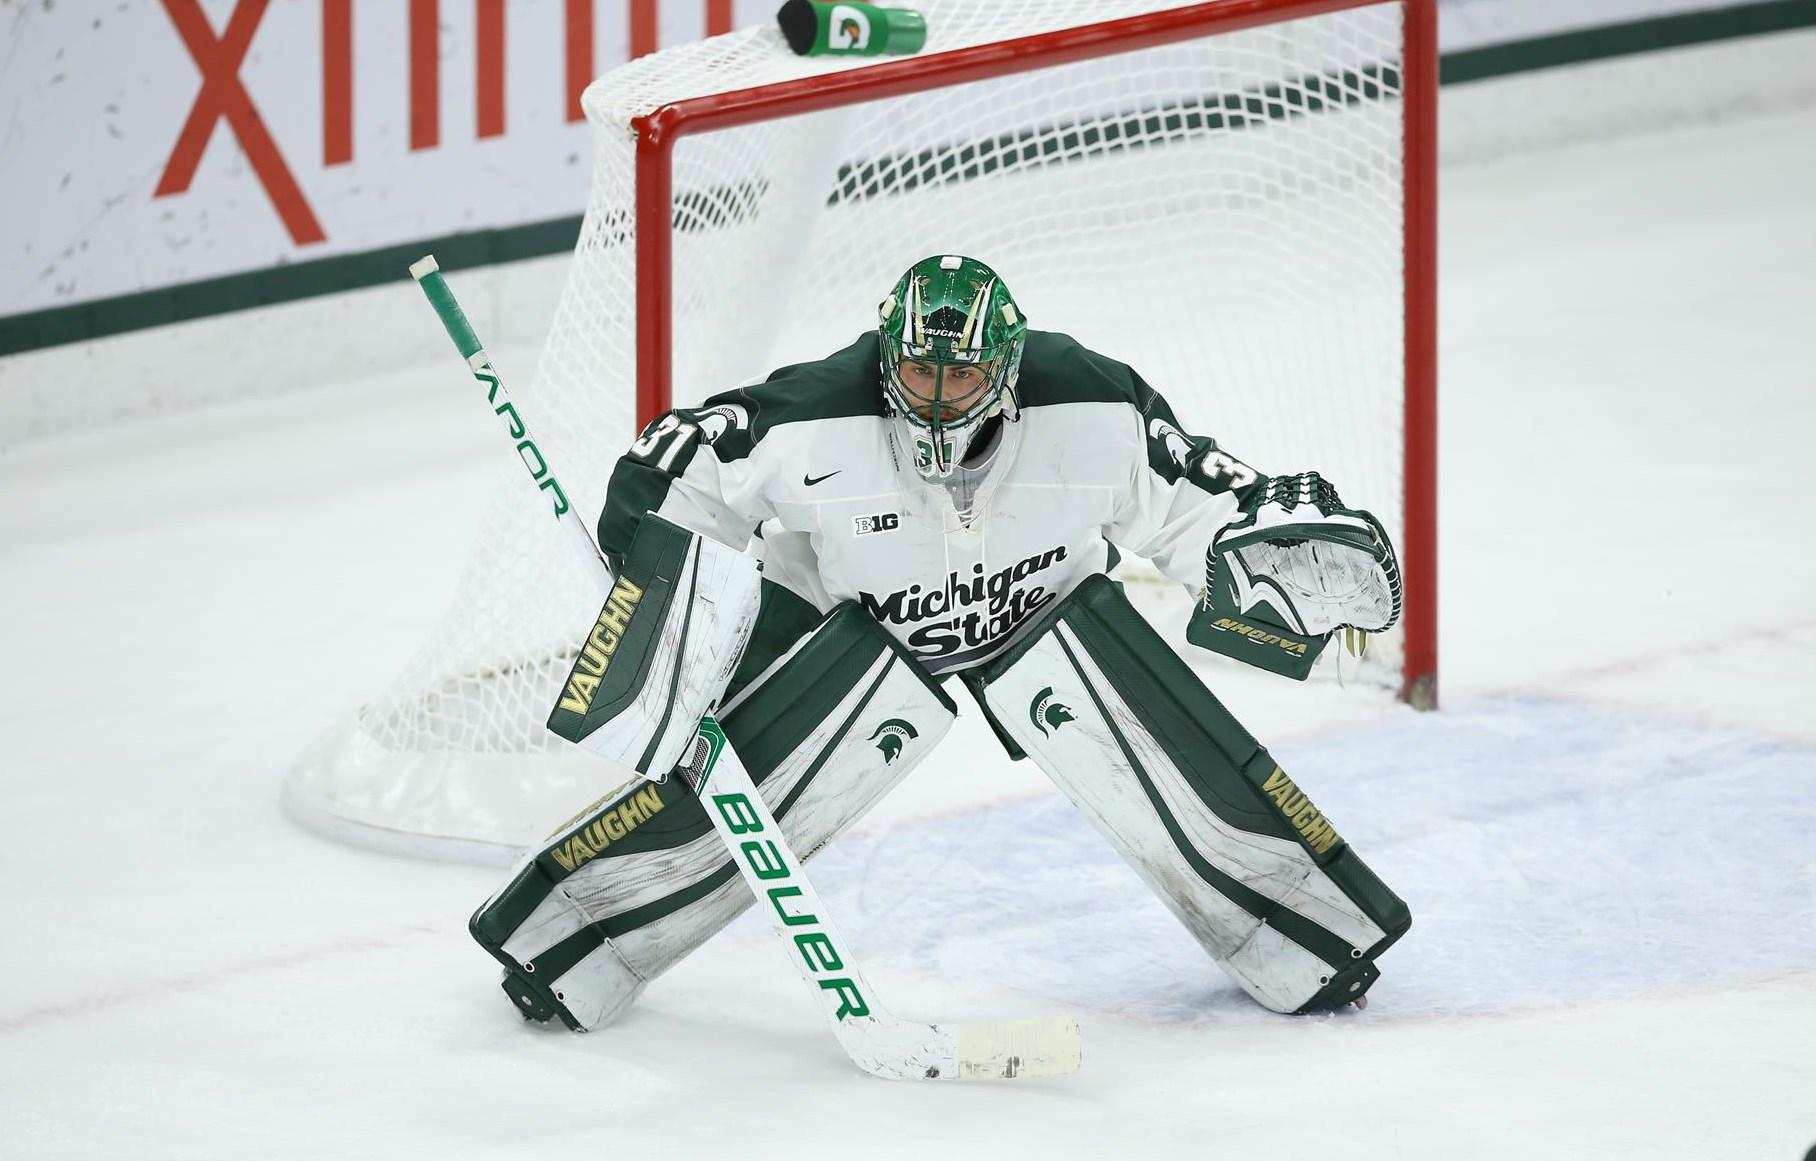 Spartans drop game against No. 3 Notre Dame in shootout